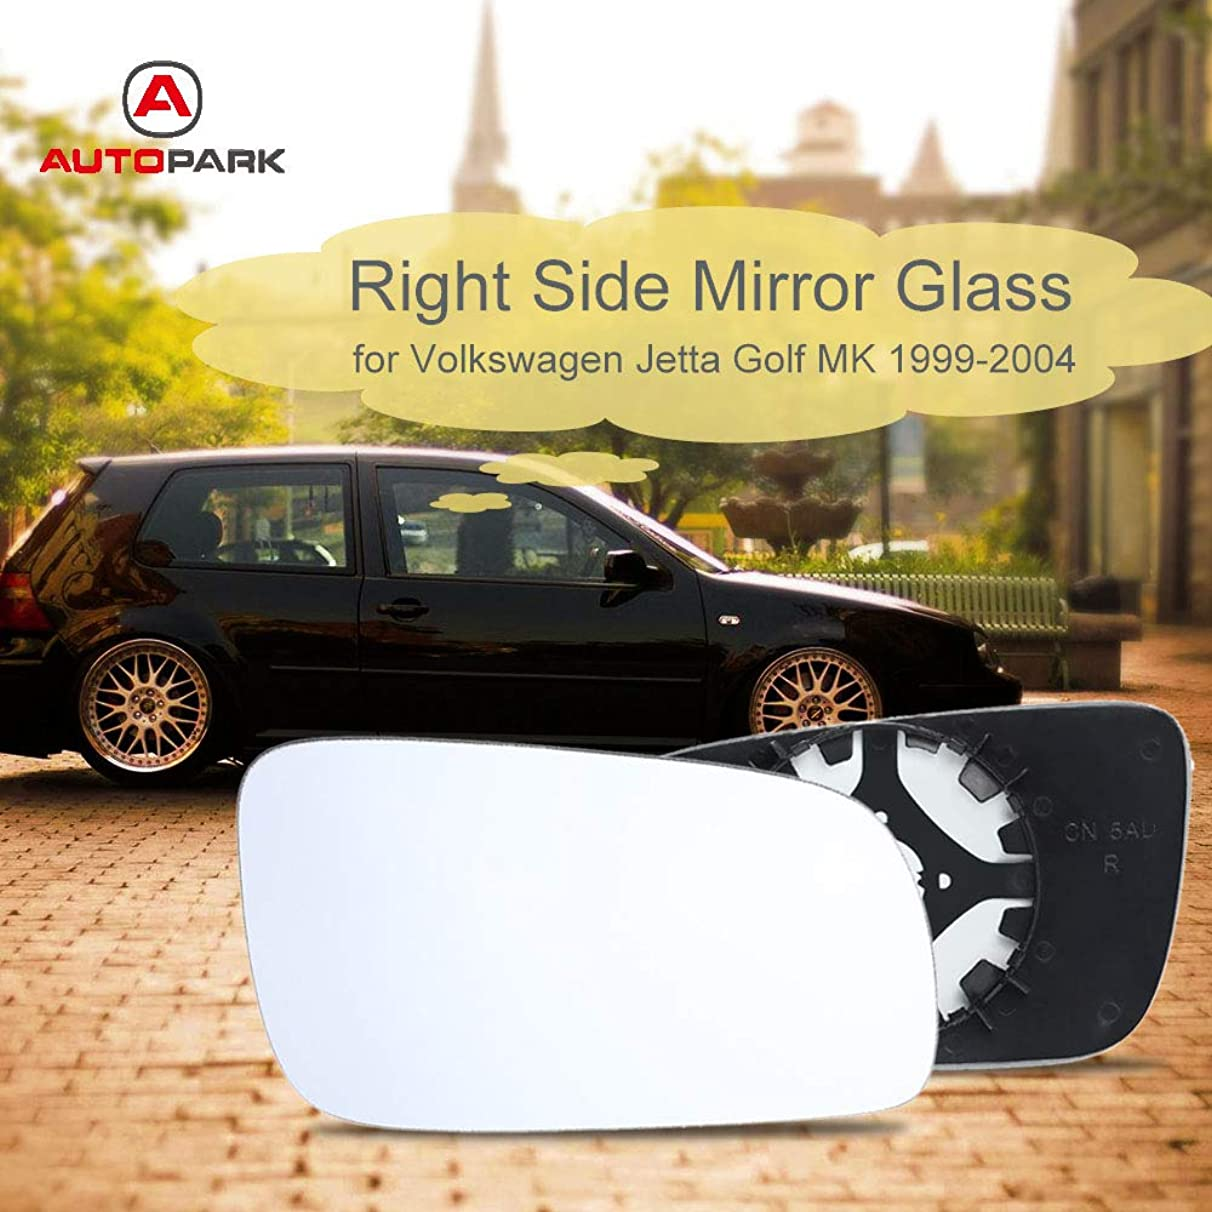 Star-Trade-Inc - White Car Style Right Side Mirror Heated Glasses for Volkswagen VW Jetta Golf MK4 1999-2004